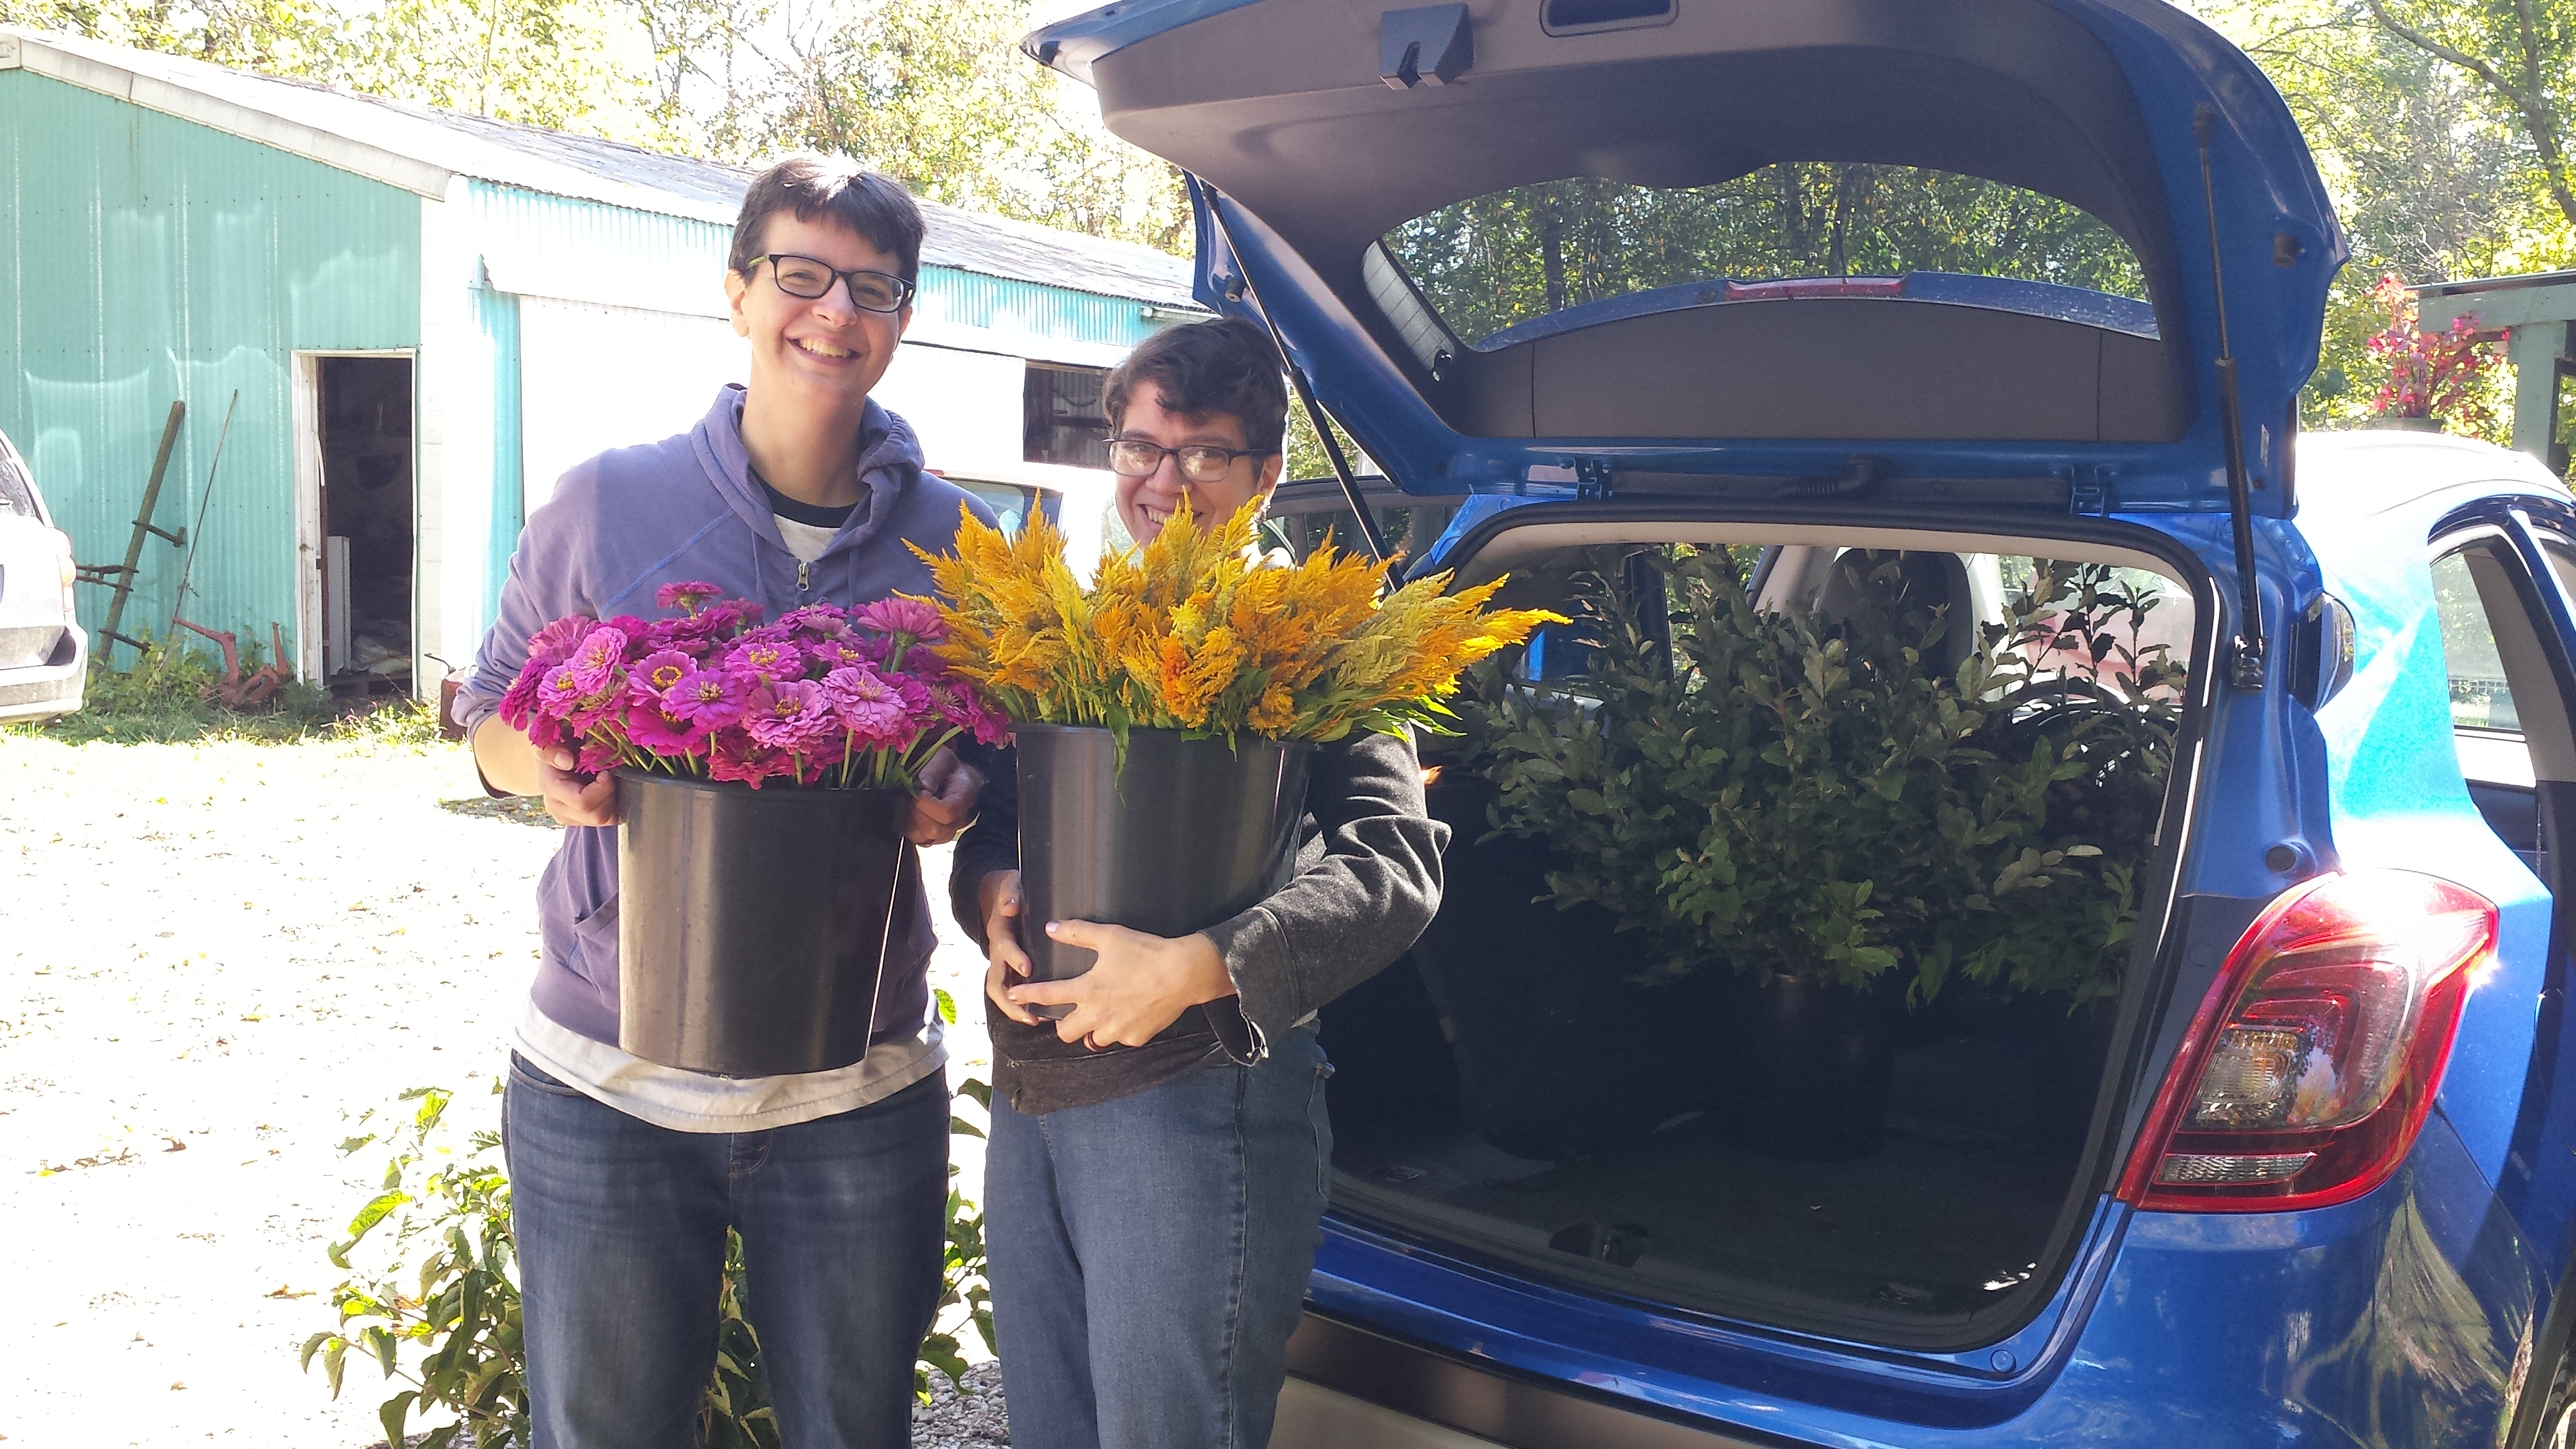 Caption: Rosalie and Katie Loading up Flowers for Their Wedding, Credit: renee wilde